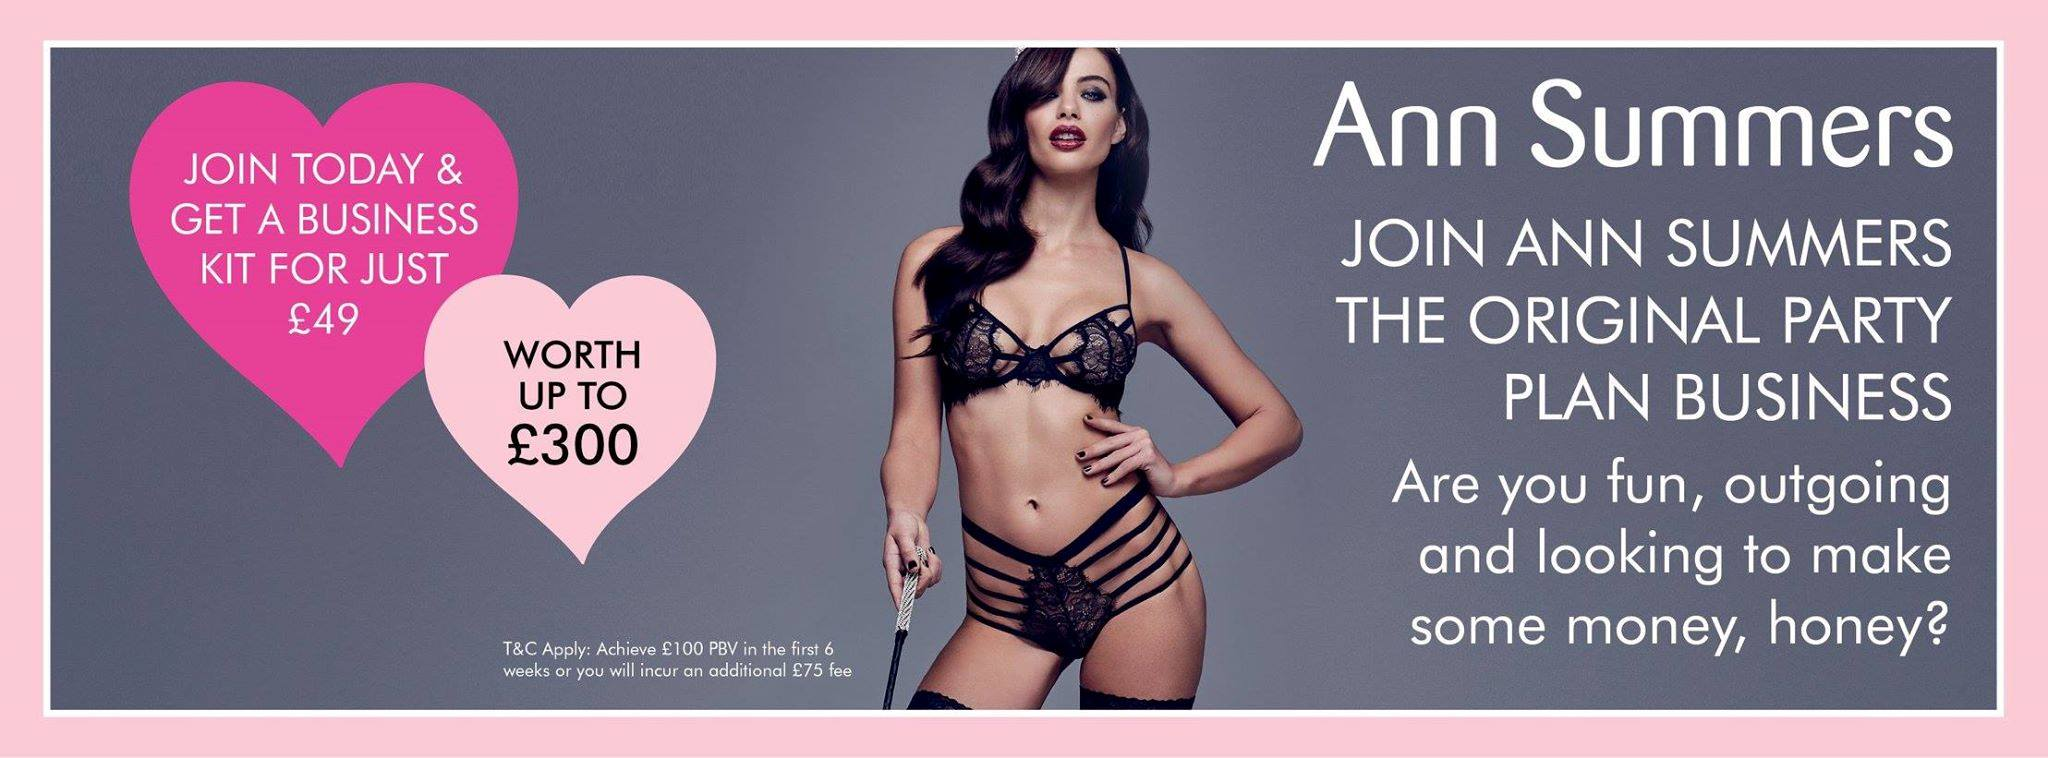 join ann summers party ambassador jobs